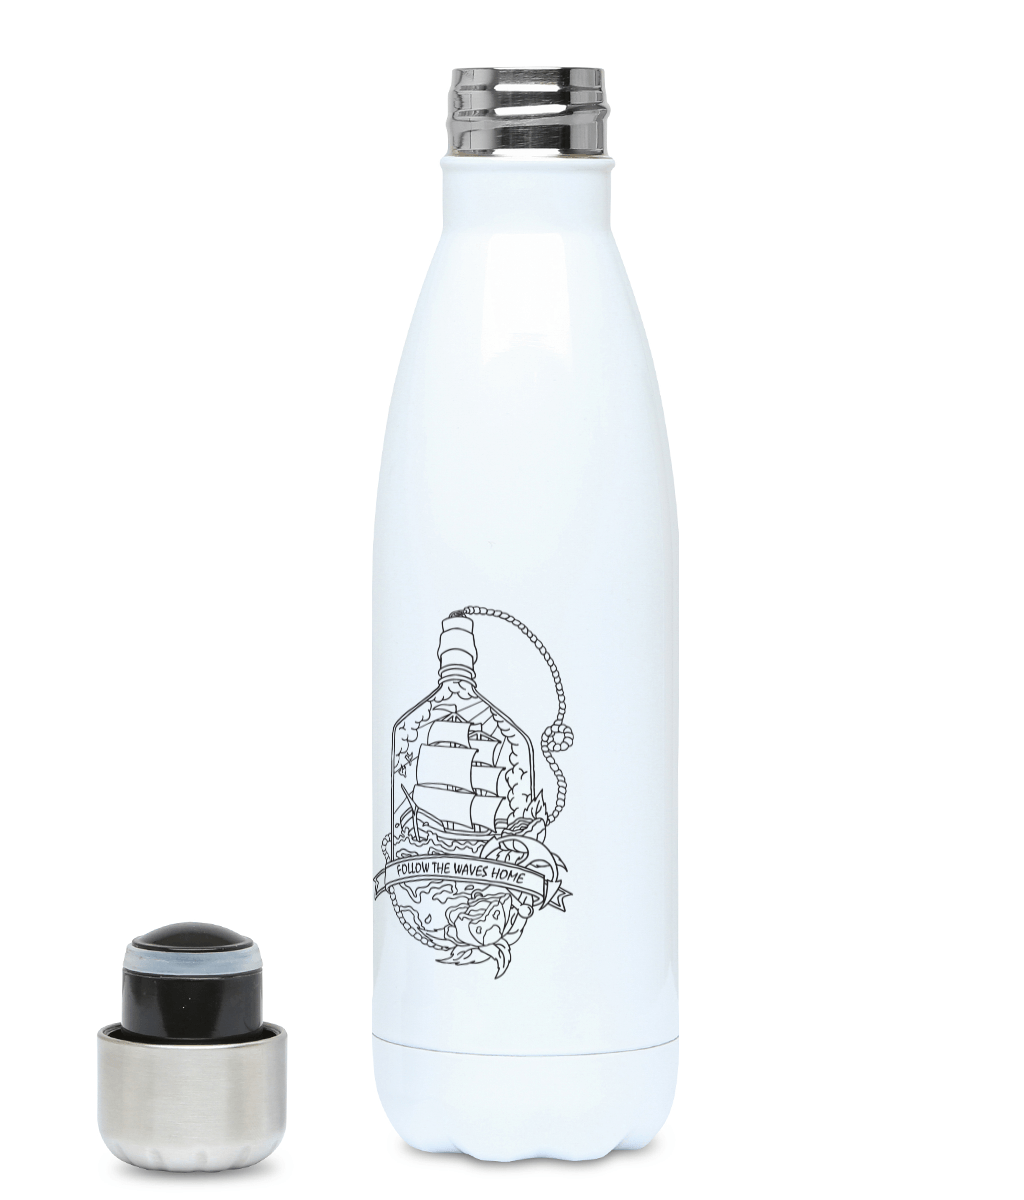 Follow The Waves Home - Plastic Free 500ml Water Bottle - Pen and Ink Studios